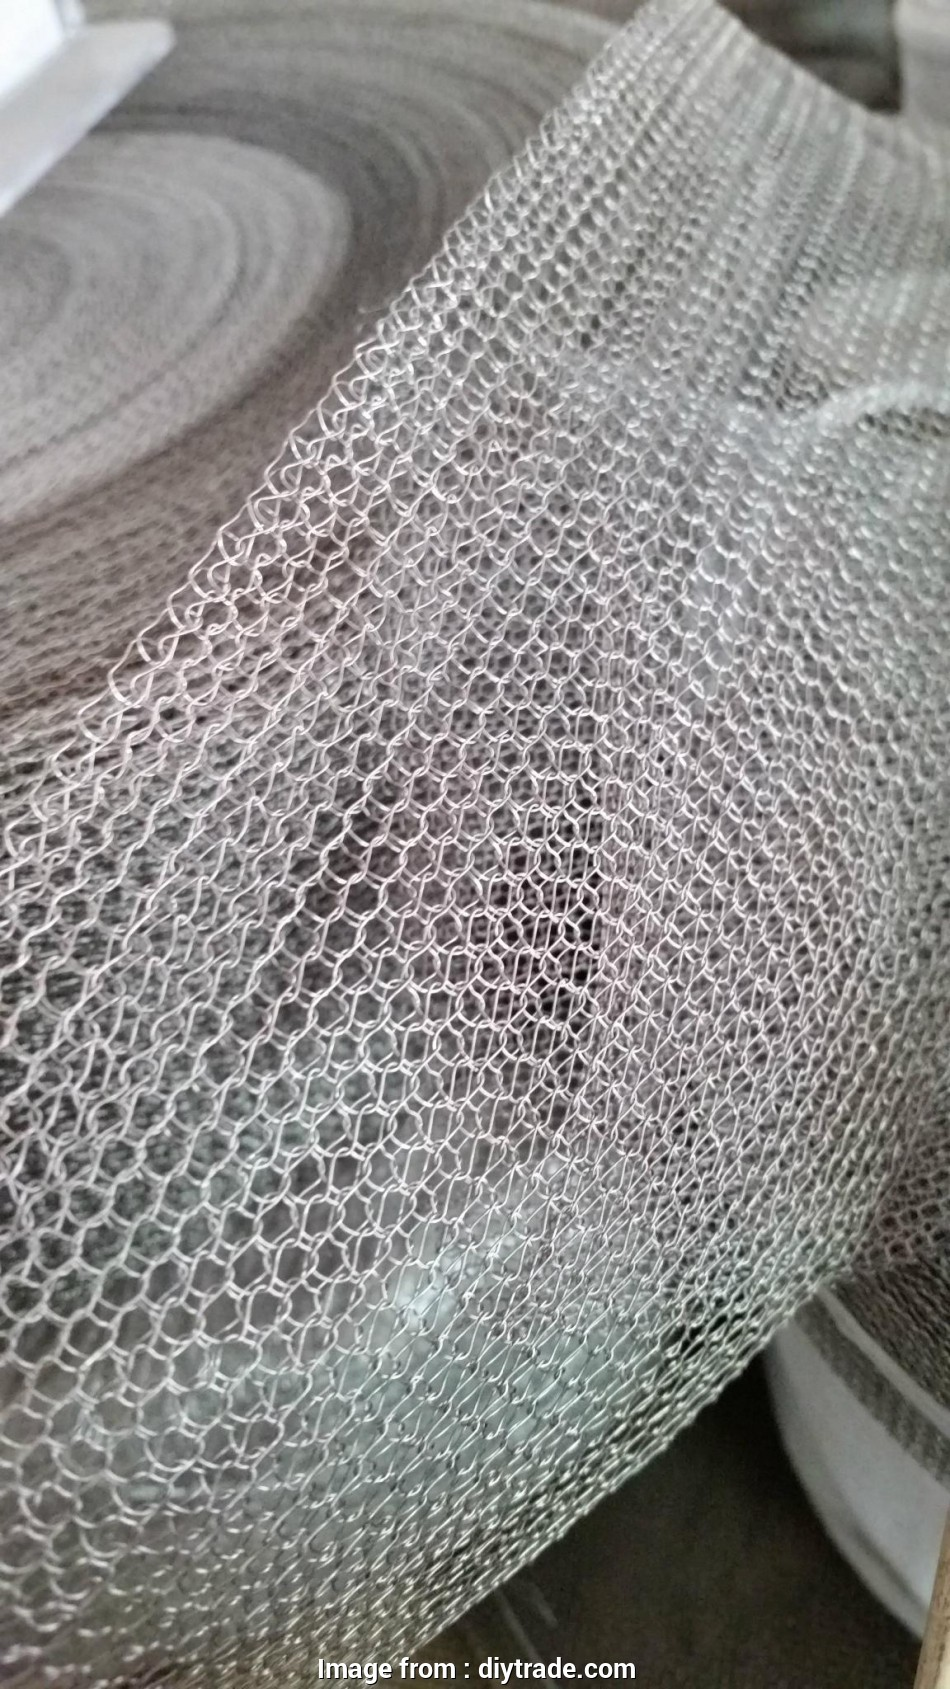 knitted wire mesh STAINLESS STEEL KNITTED WIRE MESH, FLS-09 -, (China 8 Perfect Knitted Wire Mesh Solutions